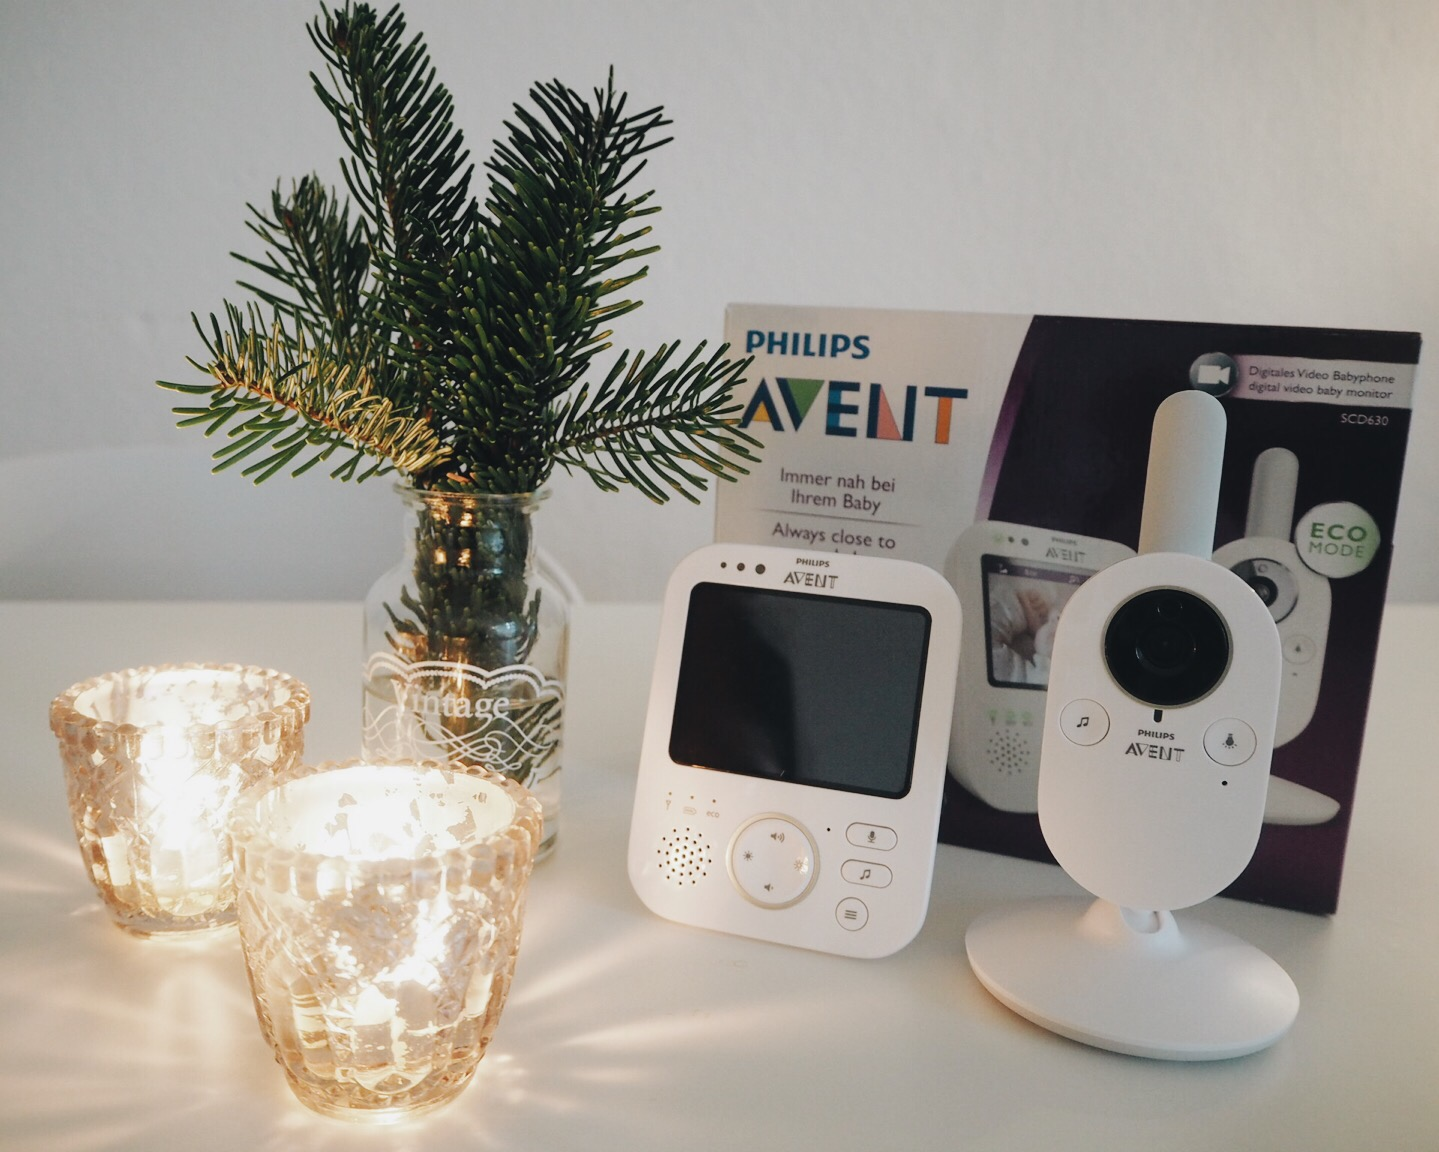 1. Adventsverlosung // Digitales BabyPhone von Philips Avent (closed)